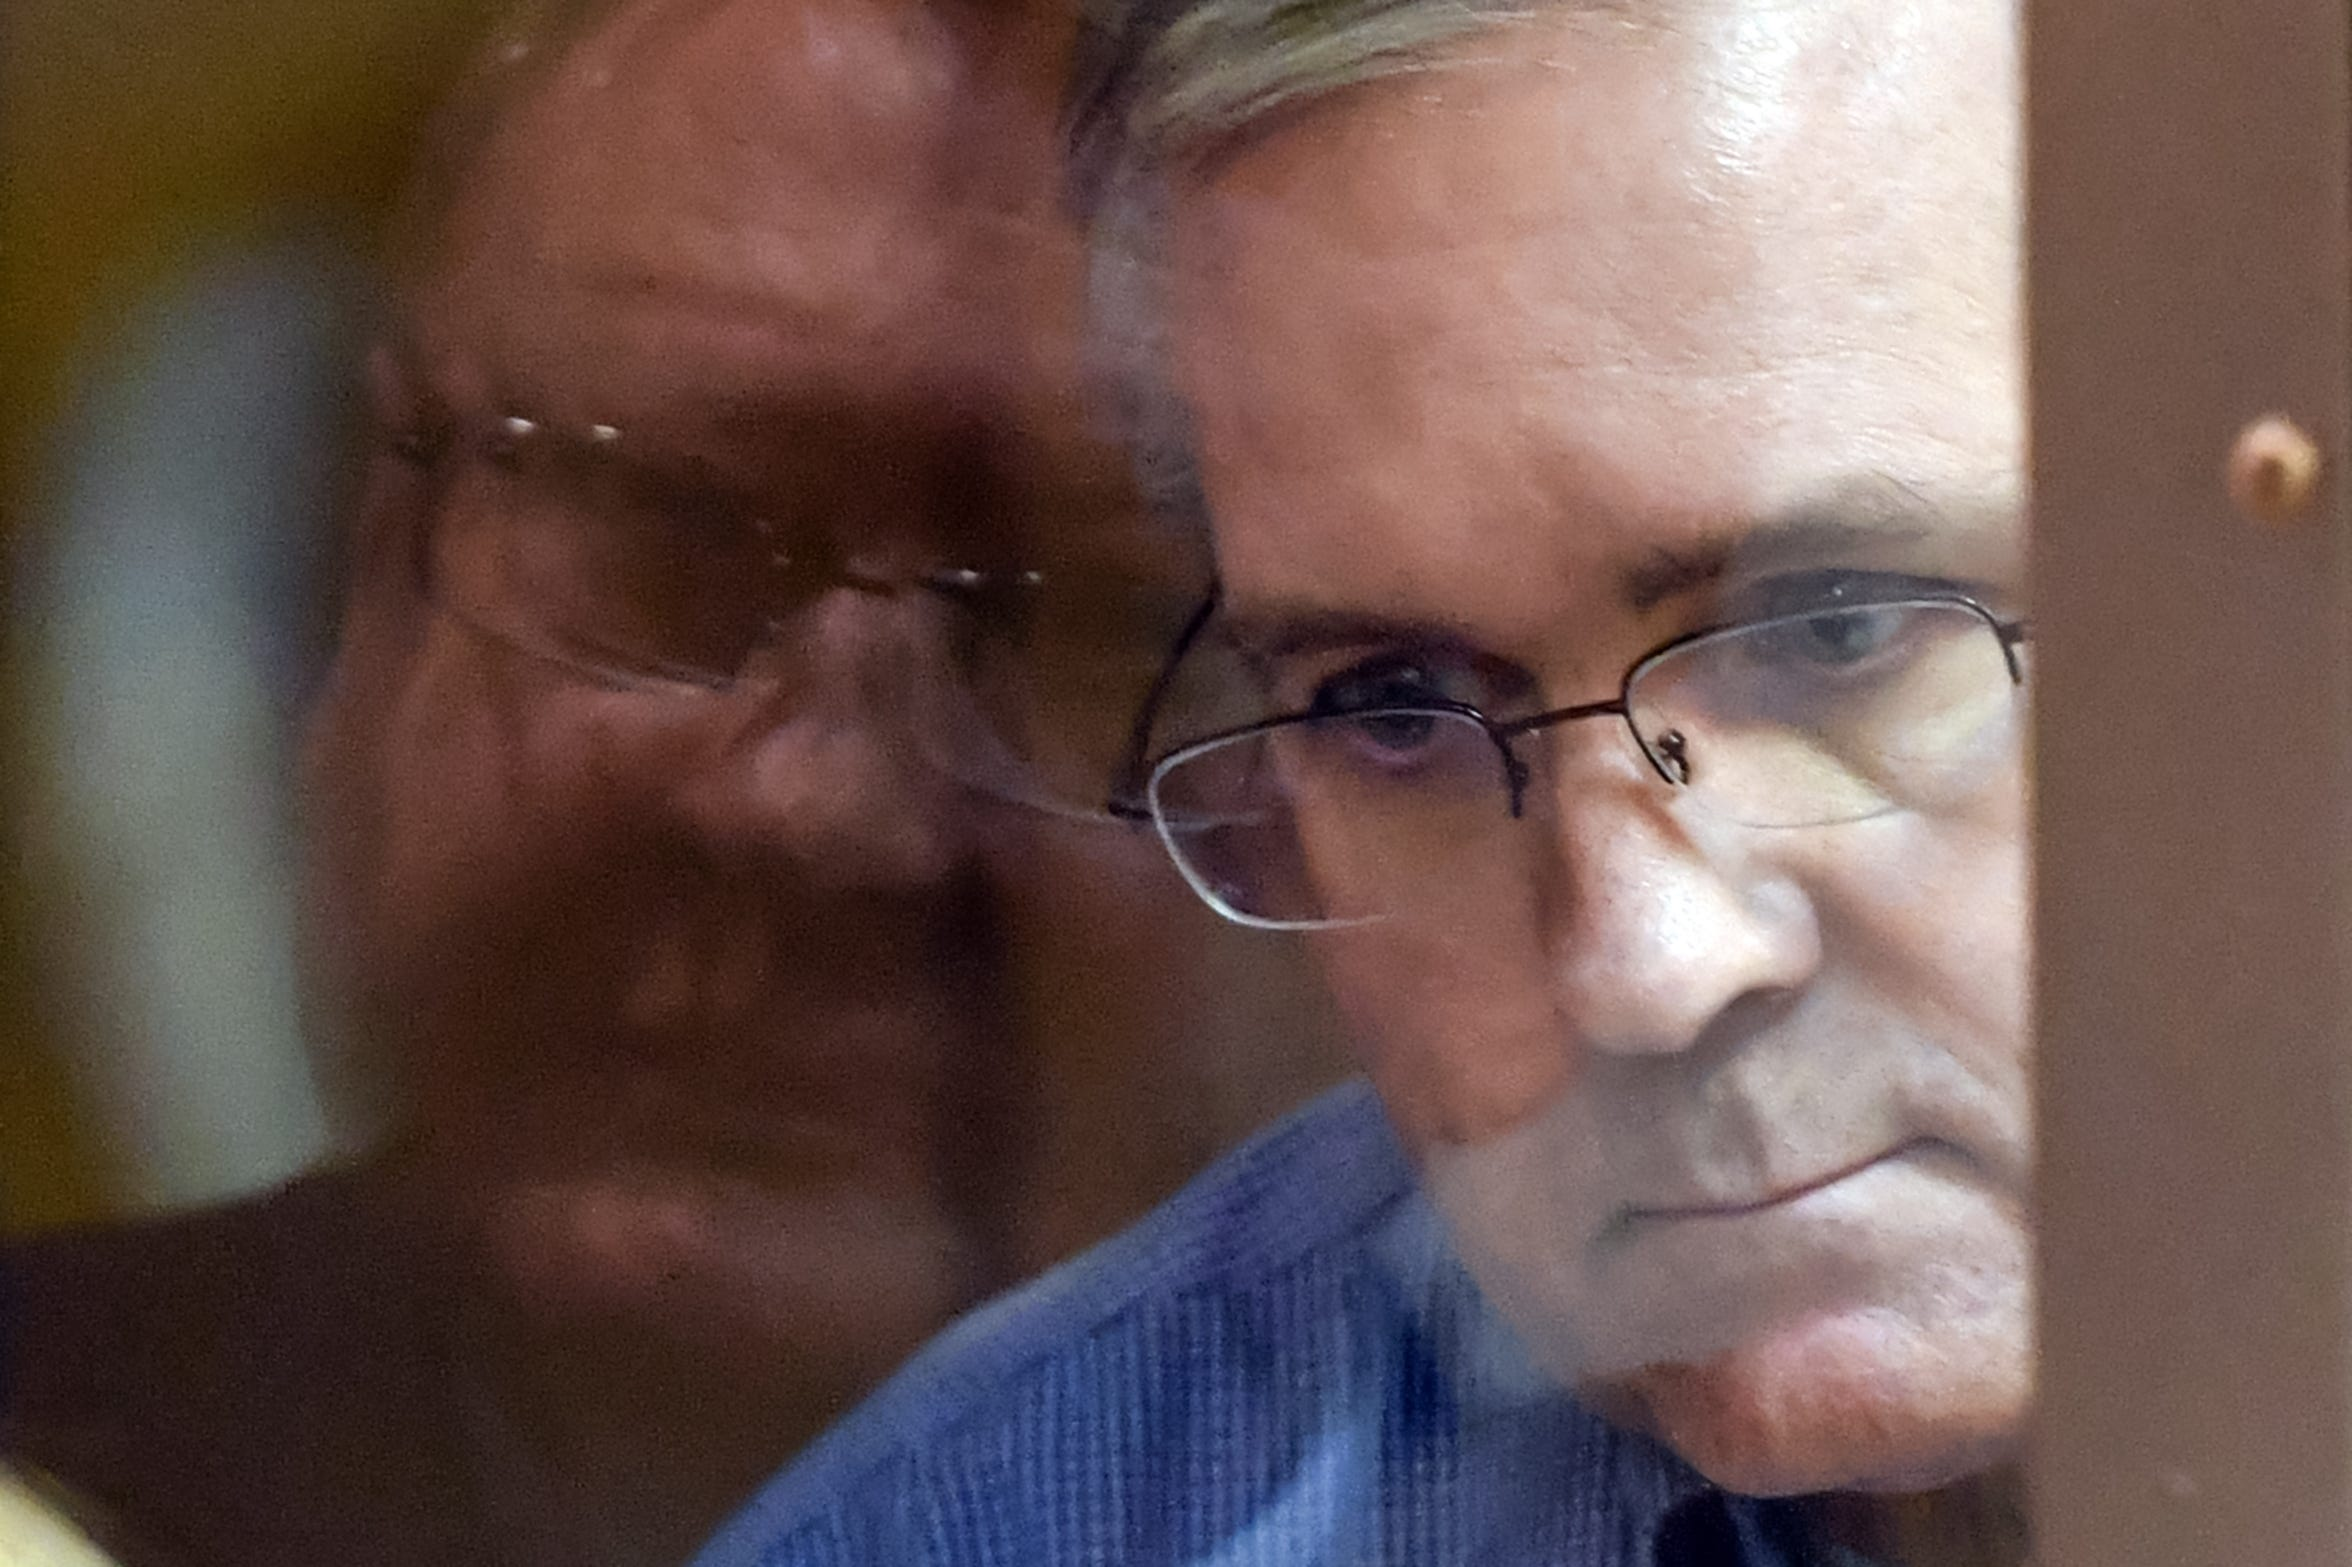 Paul Whelan listens to his lawyers while standing inside a defendants' cage during a hearing at a court in Moscow earlier this year.